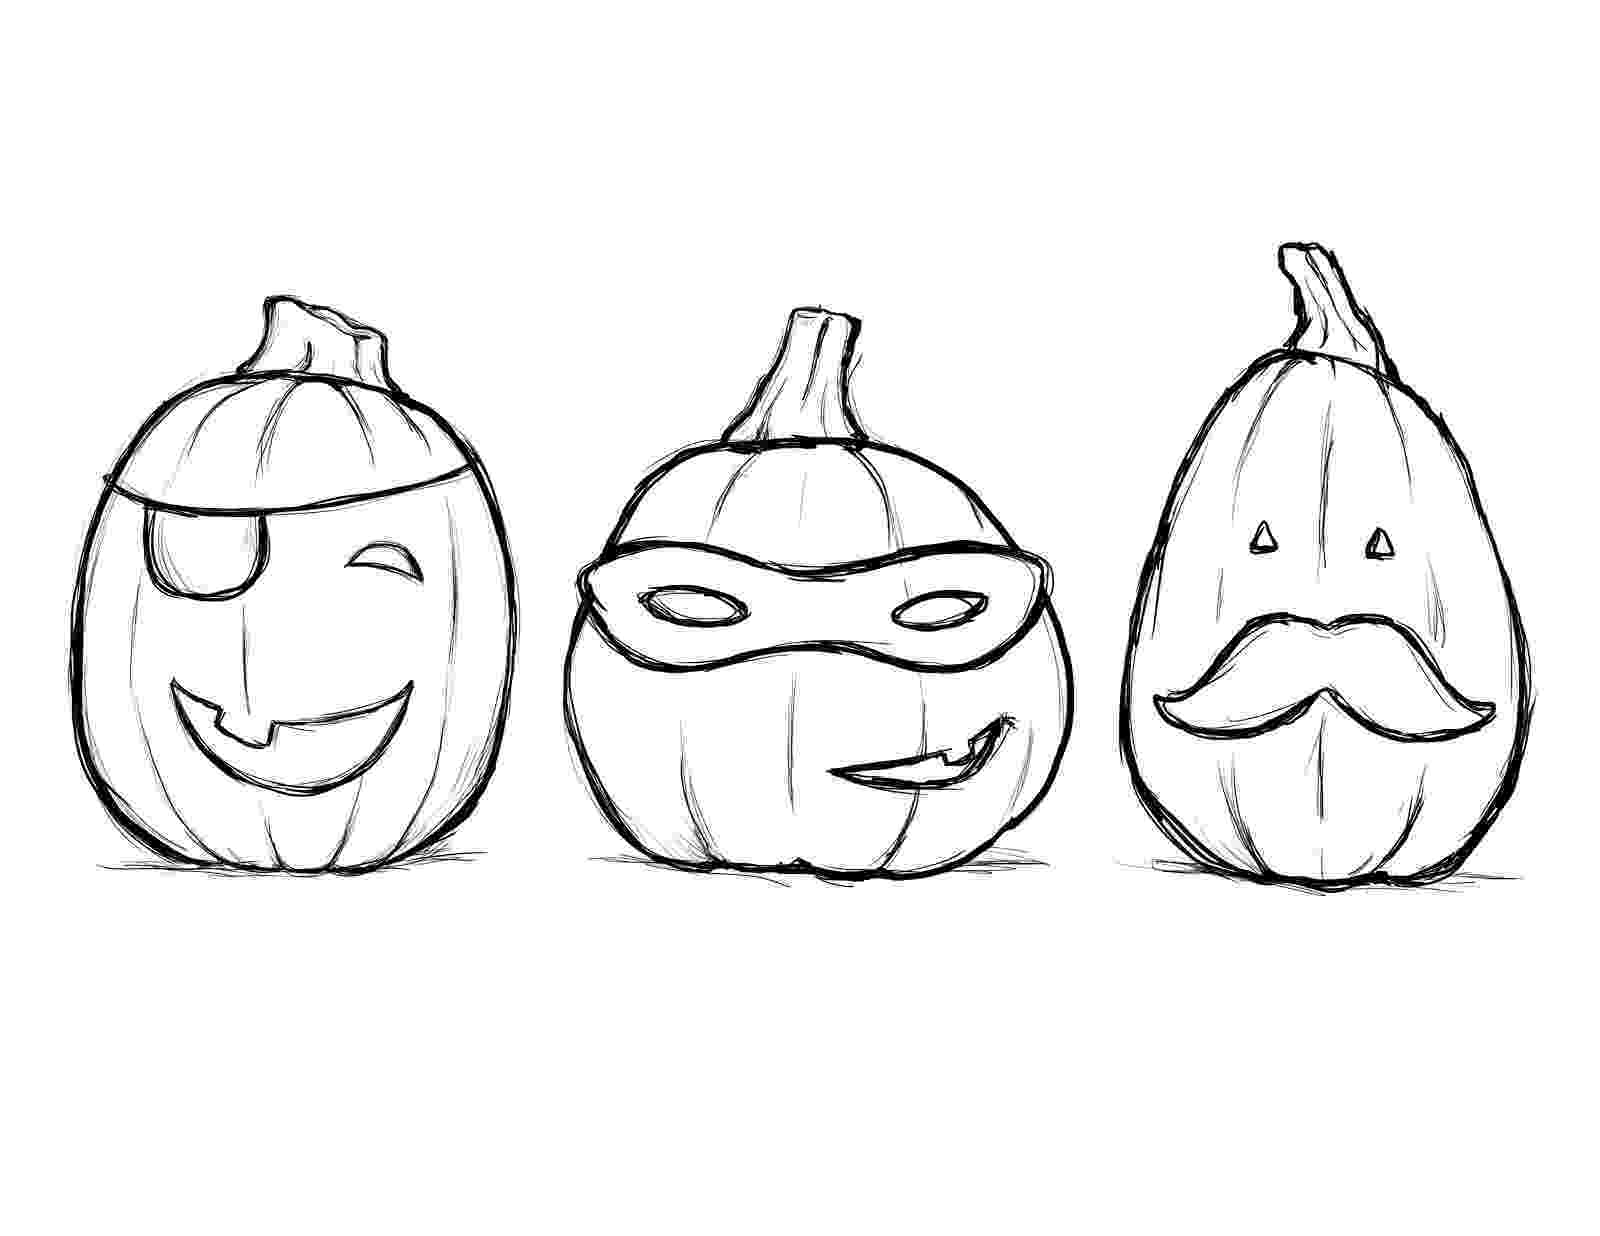 coloring pages for pumpkins free printable pumpkin coloring pages for kids coloring pumpkins for pages